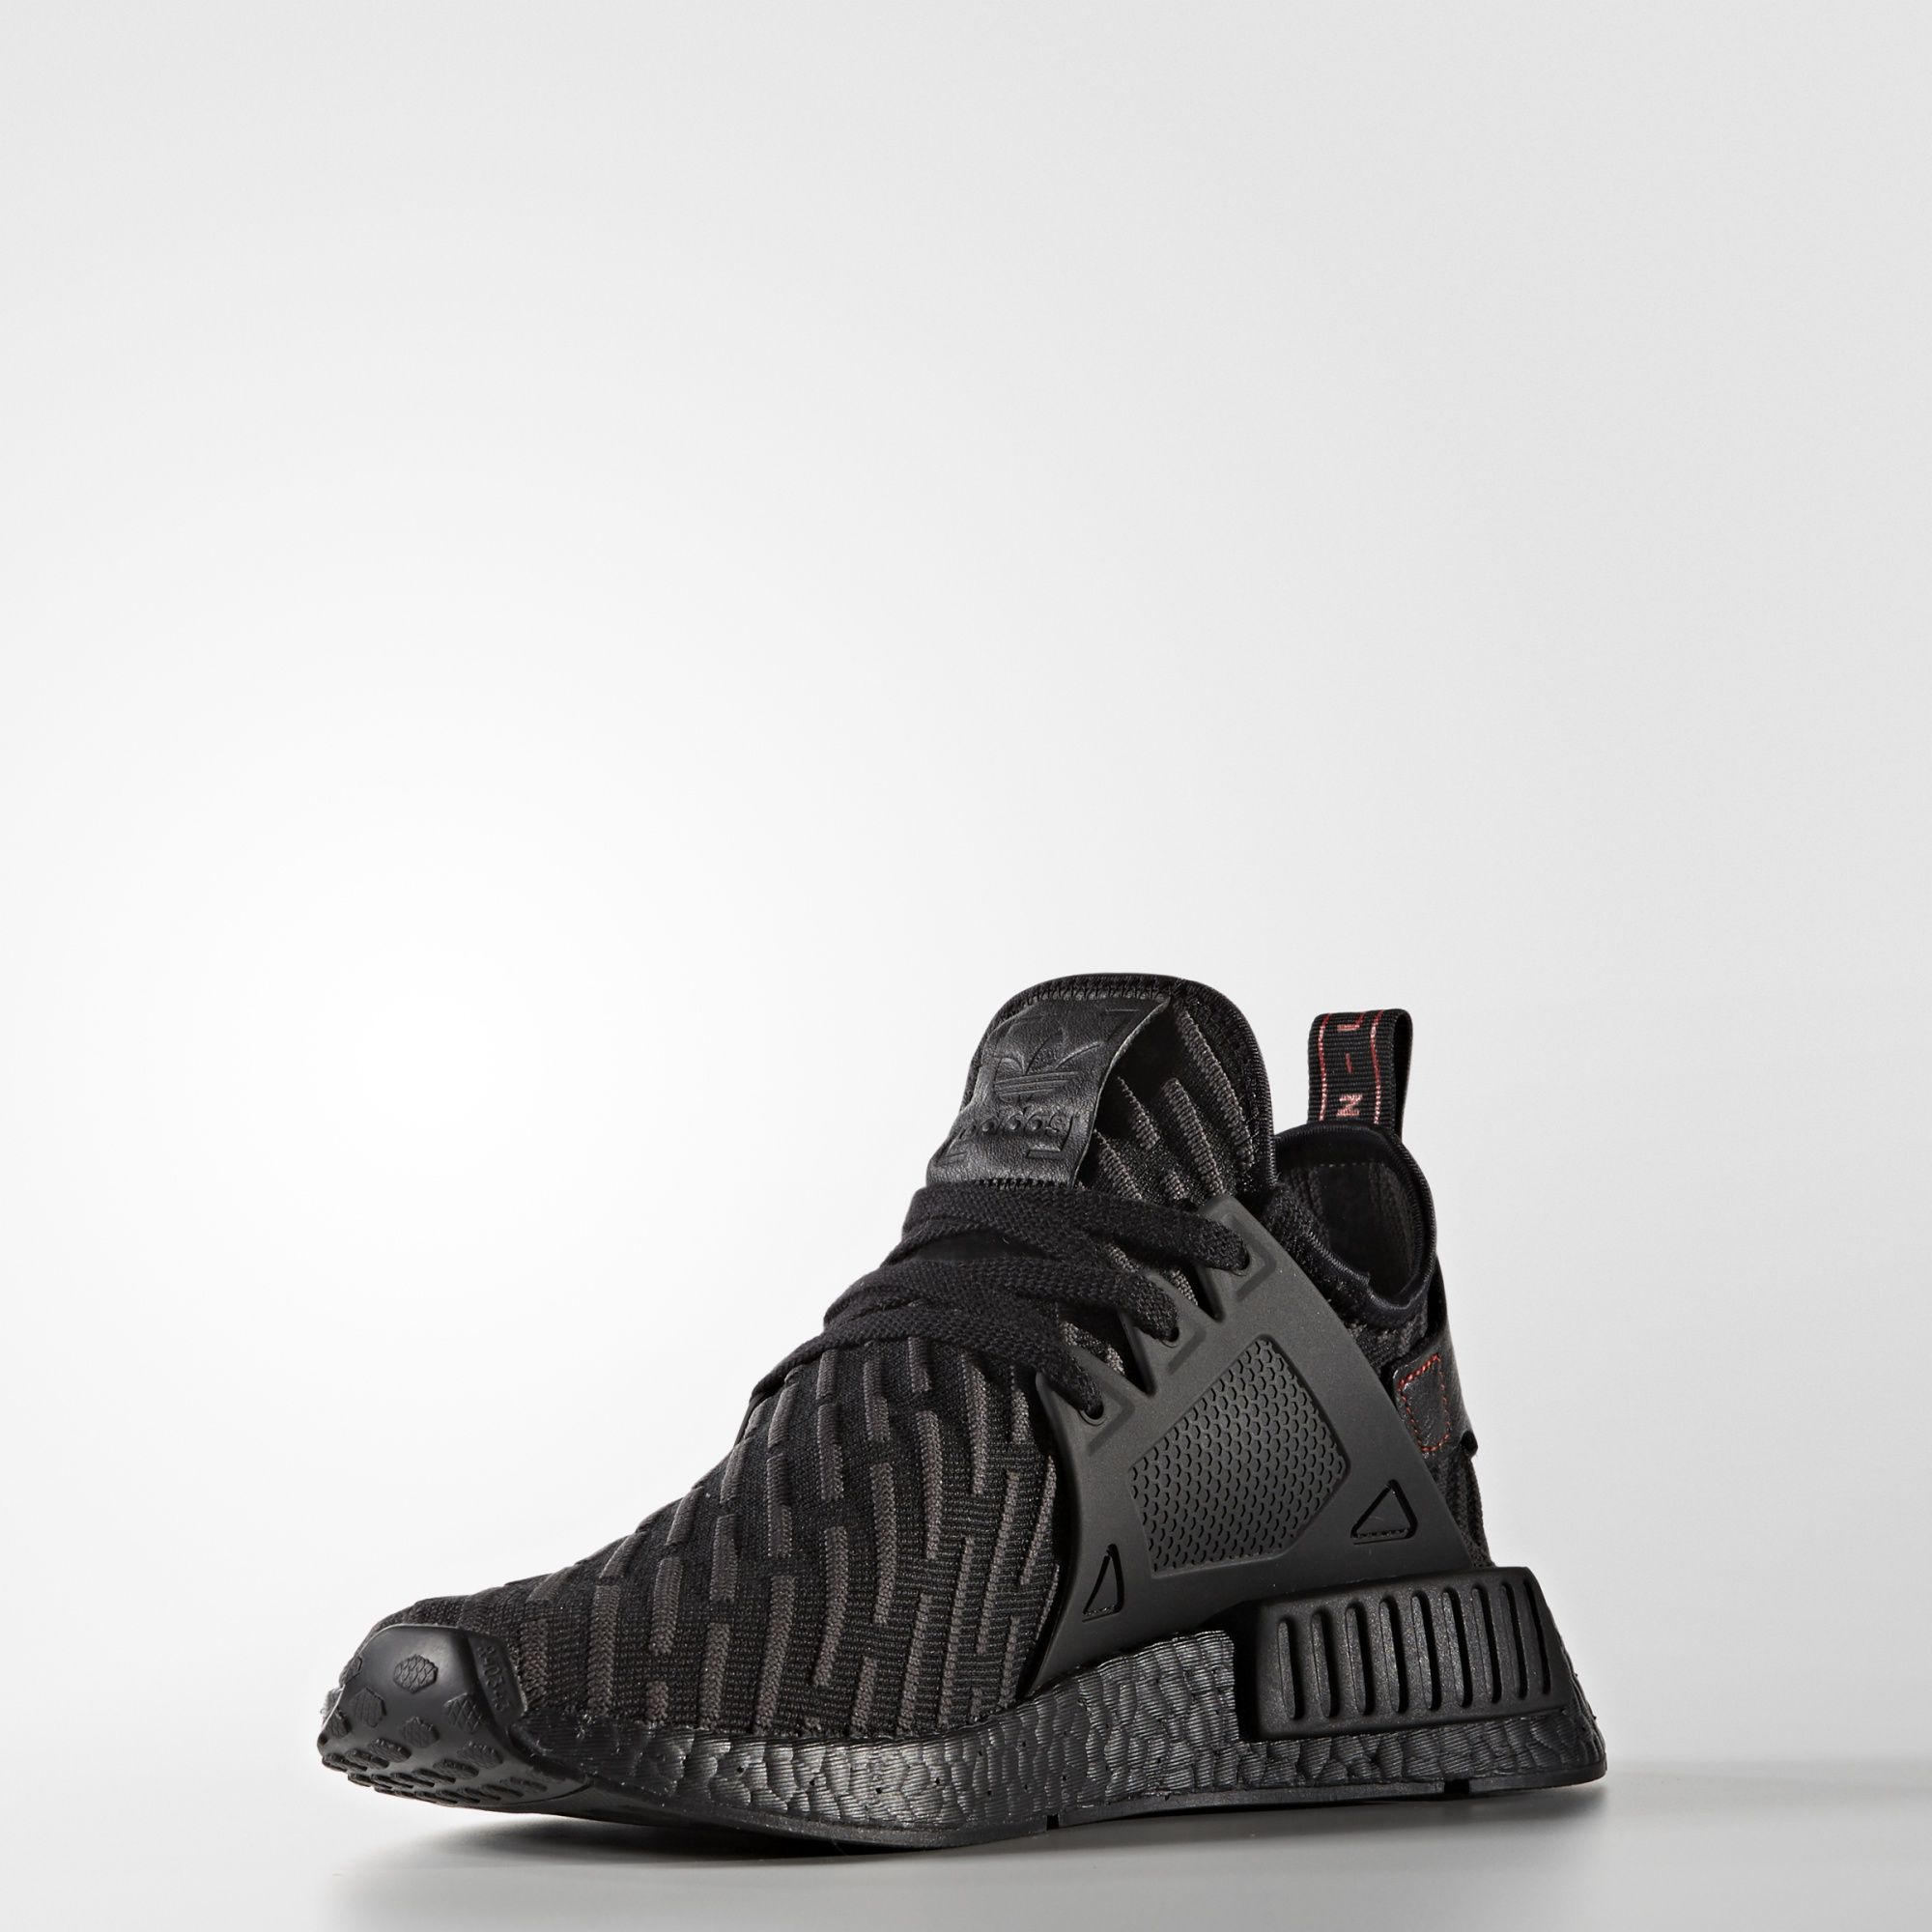 adidas nmd xr1 primeknit black core red BA7214 3